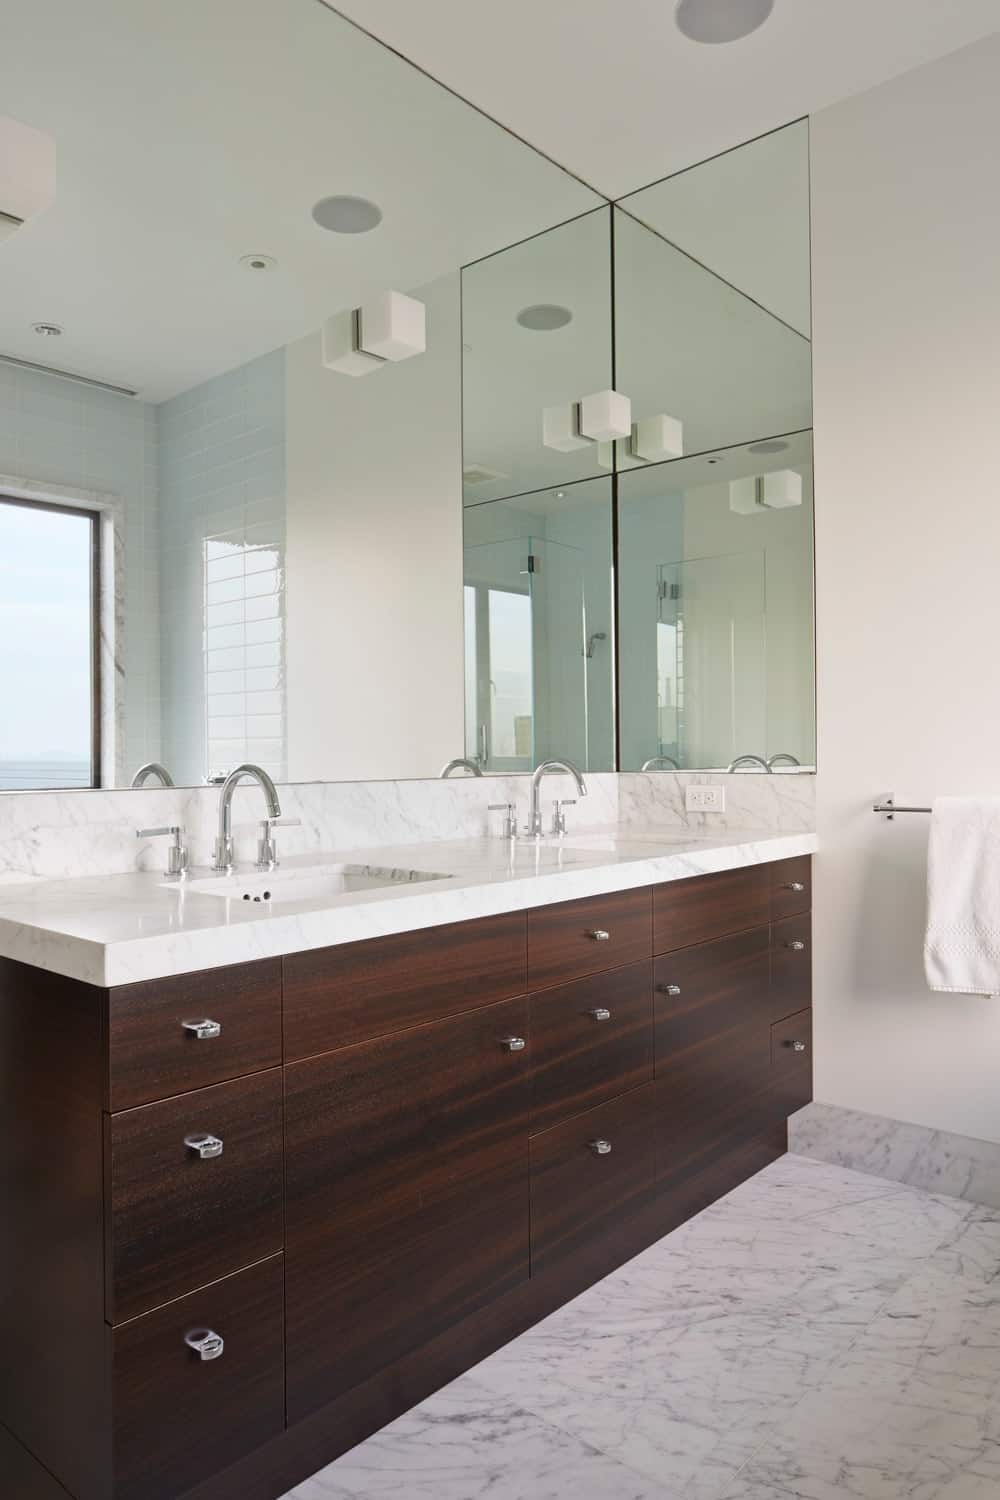 Modern bathroom with double sink featuring marble countertop and wide mirror. Photo credit: Bruce Damonte